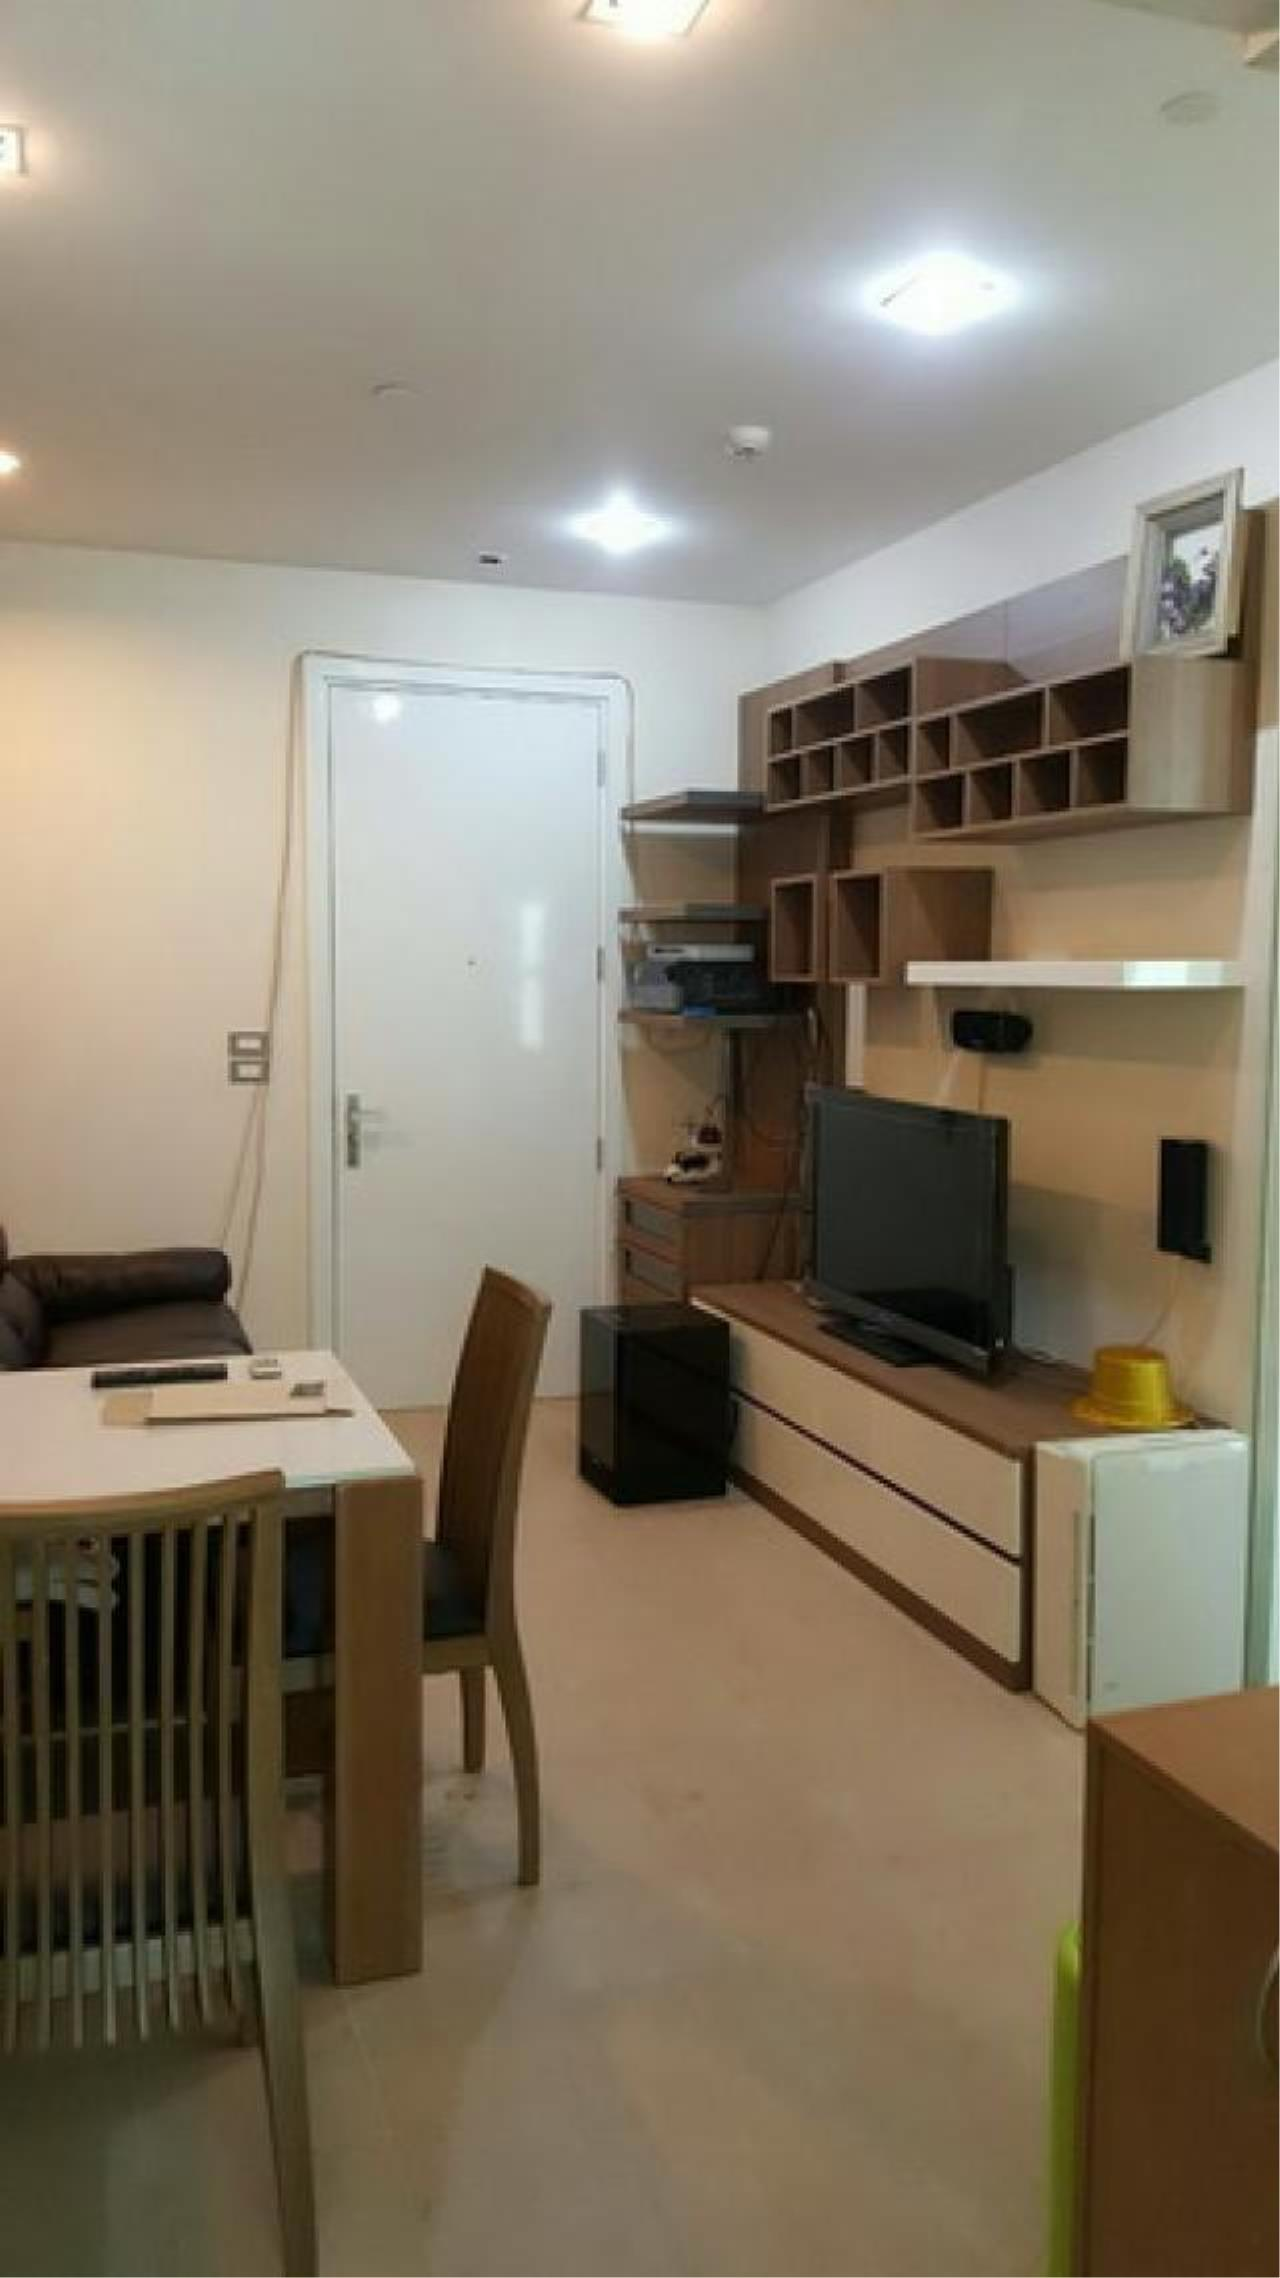 Quality Life Property Agency's *** Sale ****  WITH TENANT ! THE ROOM SUKHUMVIT 62 | 1 BED 1 BATH | 45 SQ. M. 19 FOOR 2